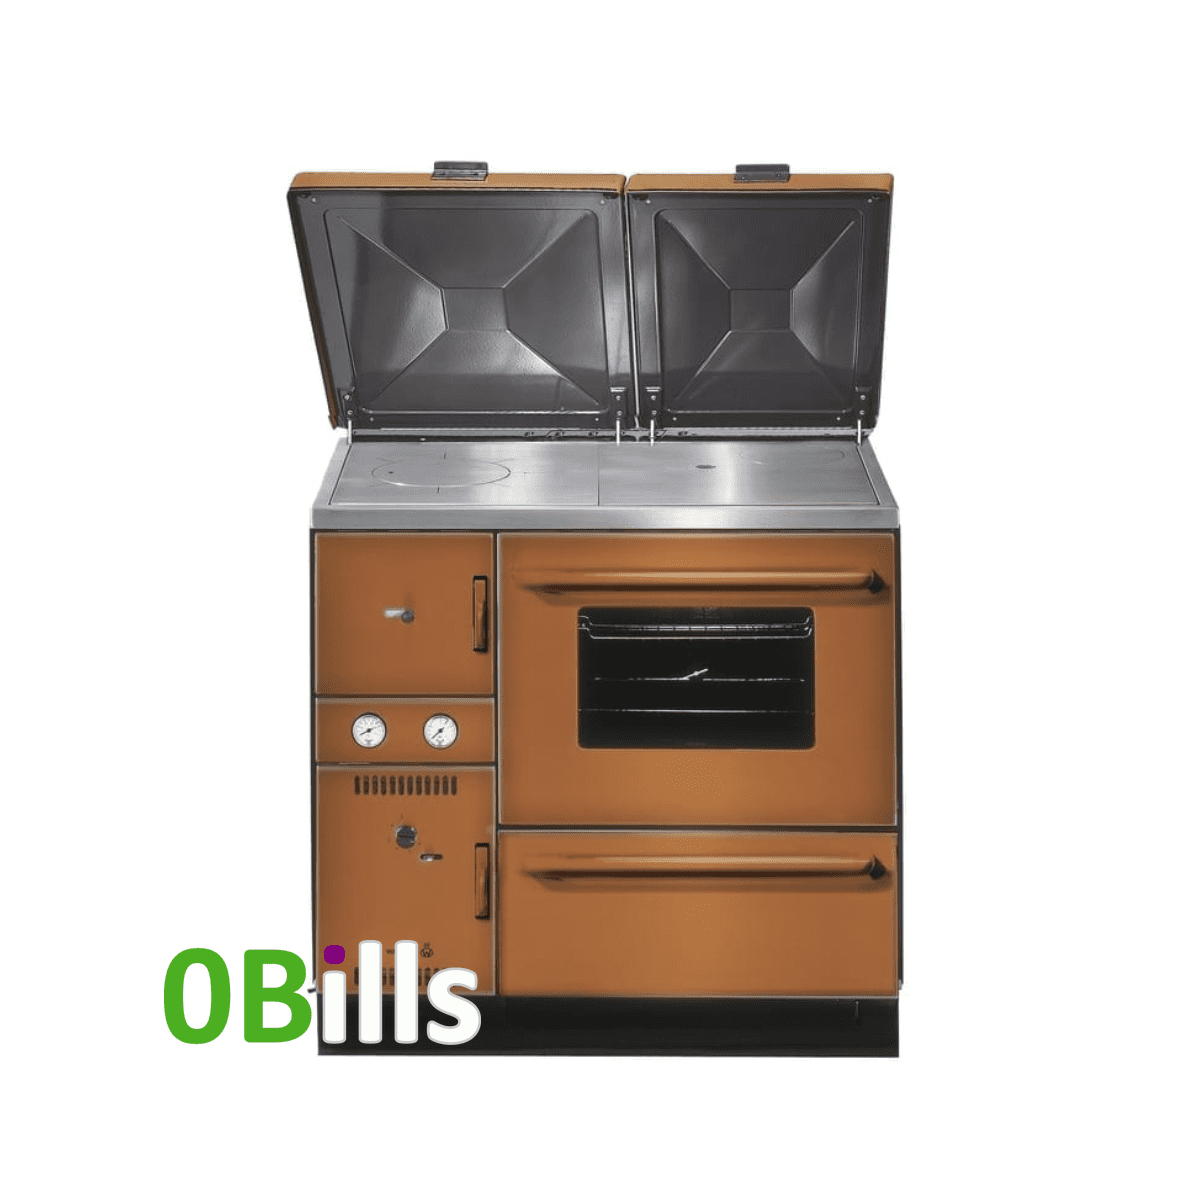 Wamsler 900 Series (K148) central heating cooker stove Sienna Brown (Right)